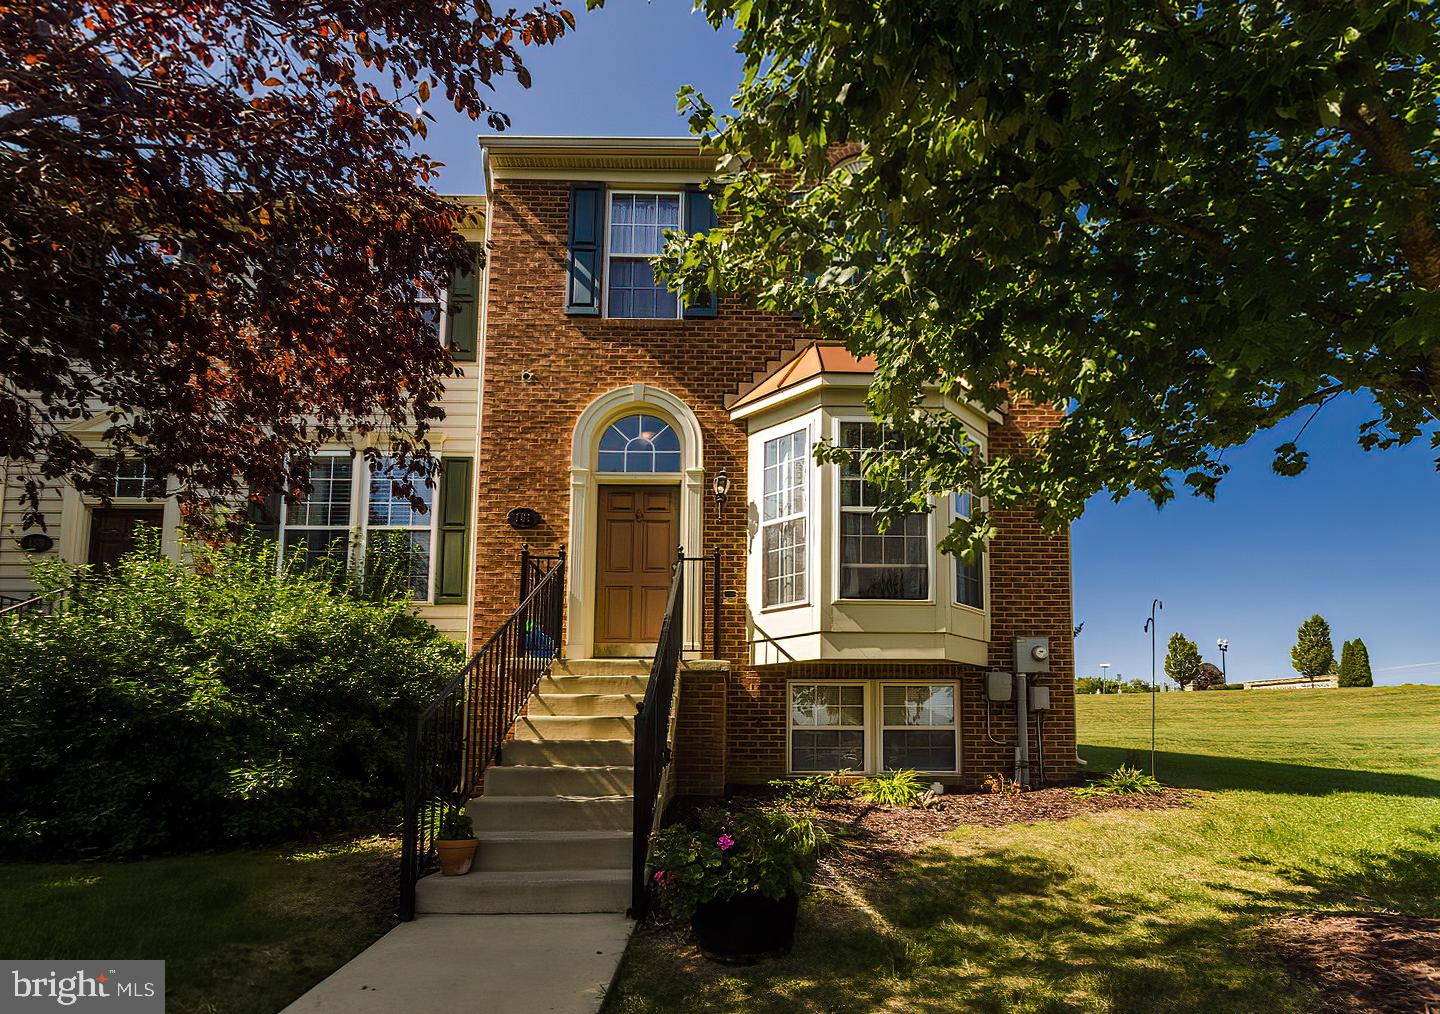 Well-maintained end-unit brick front townhome located in the desirable Shenandoah Springs subdivisio